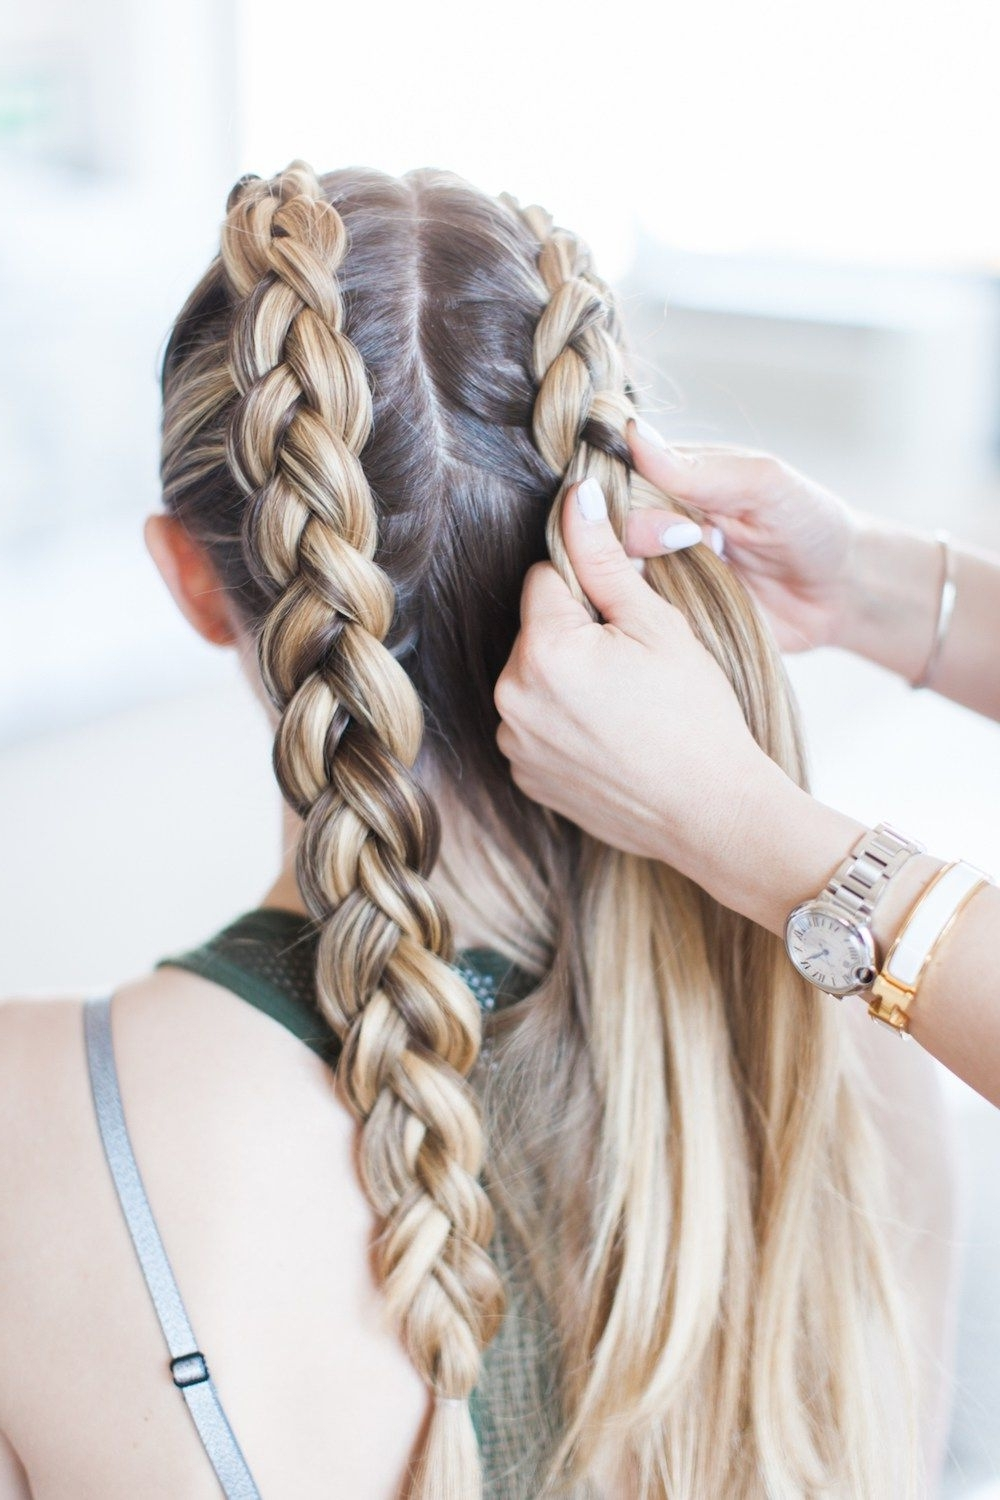 Fashionable Dutch Braid Hairstyles In Master These Double Dutch Braids In 3 Steps & Less Than 5 Minutes (View 10 of 15)